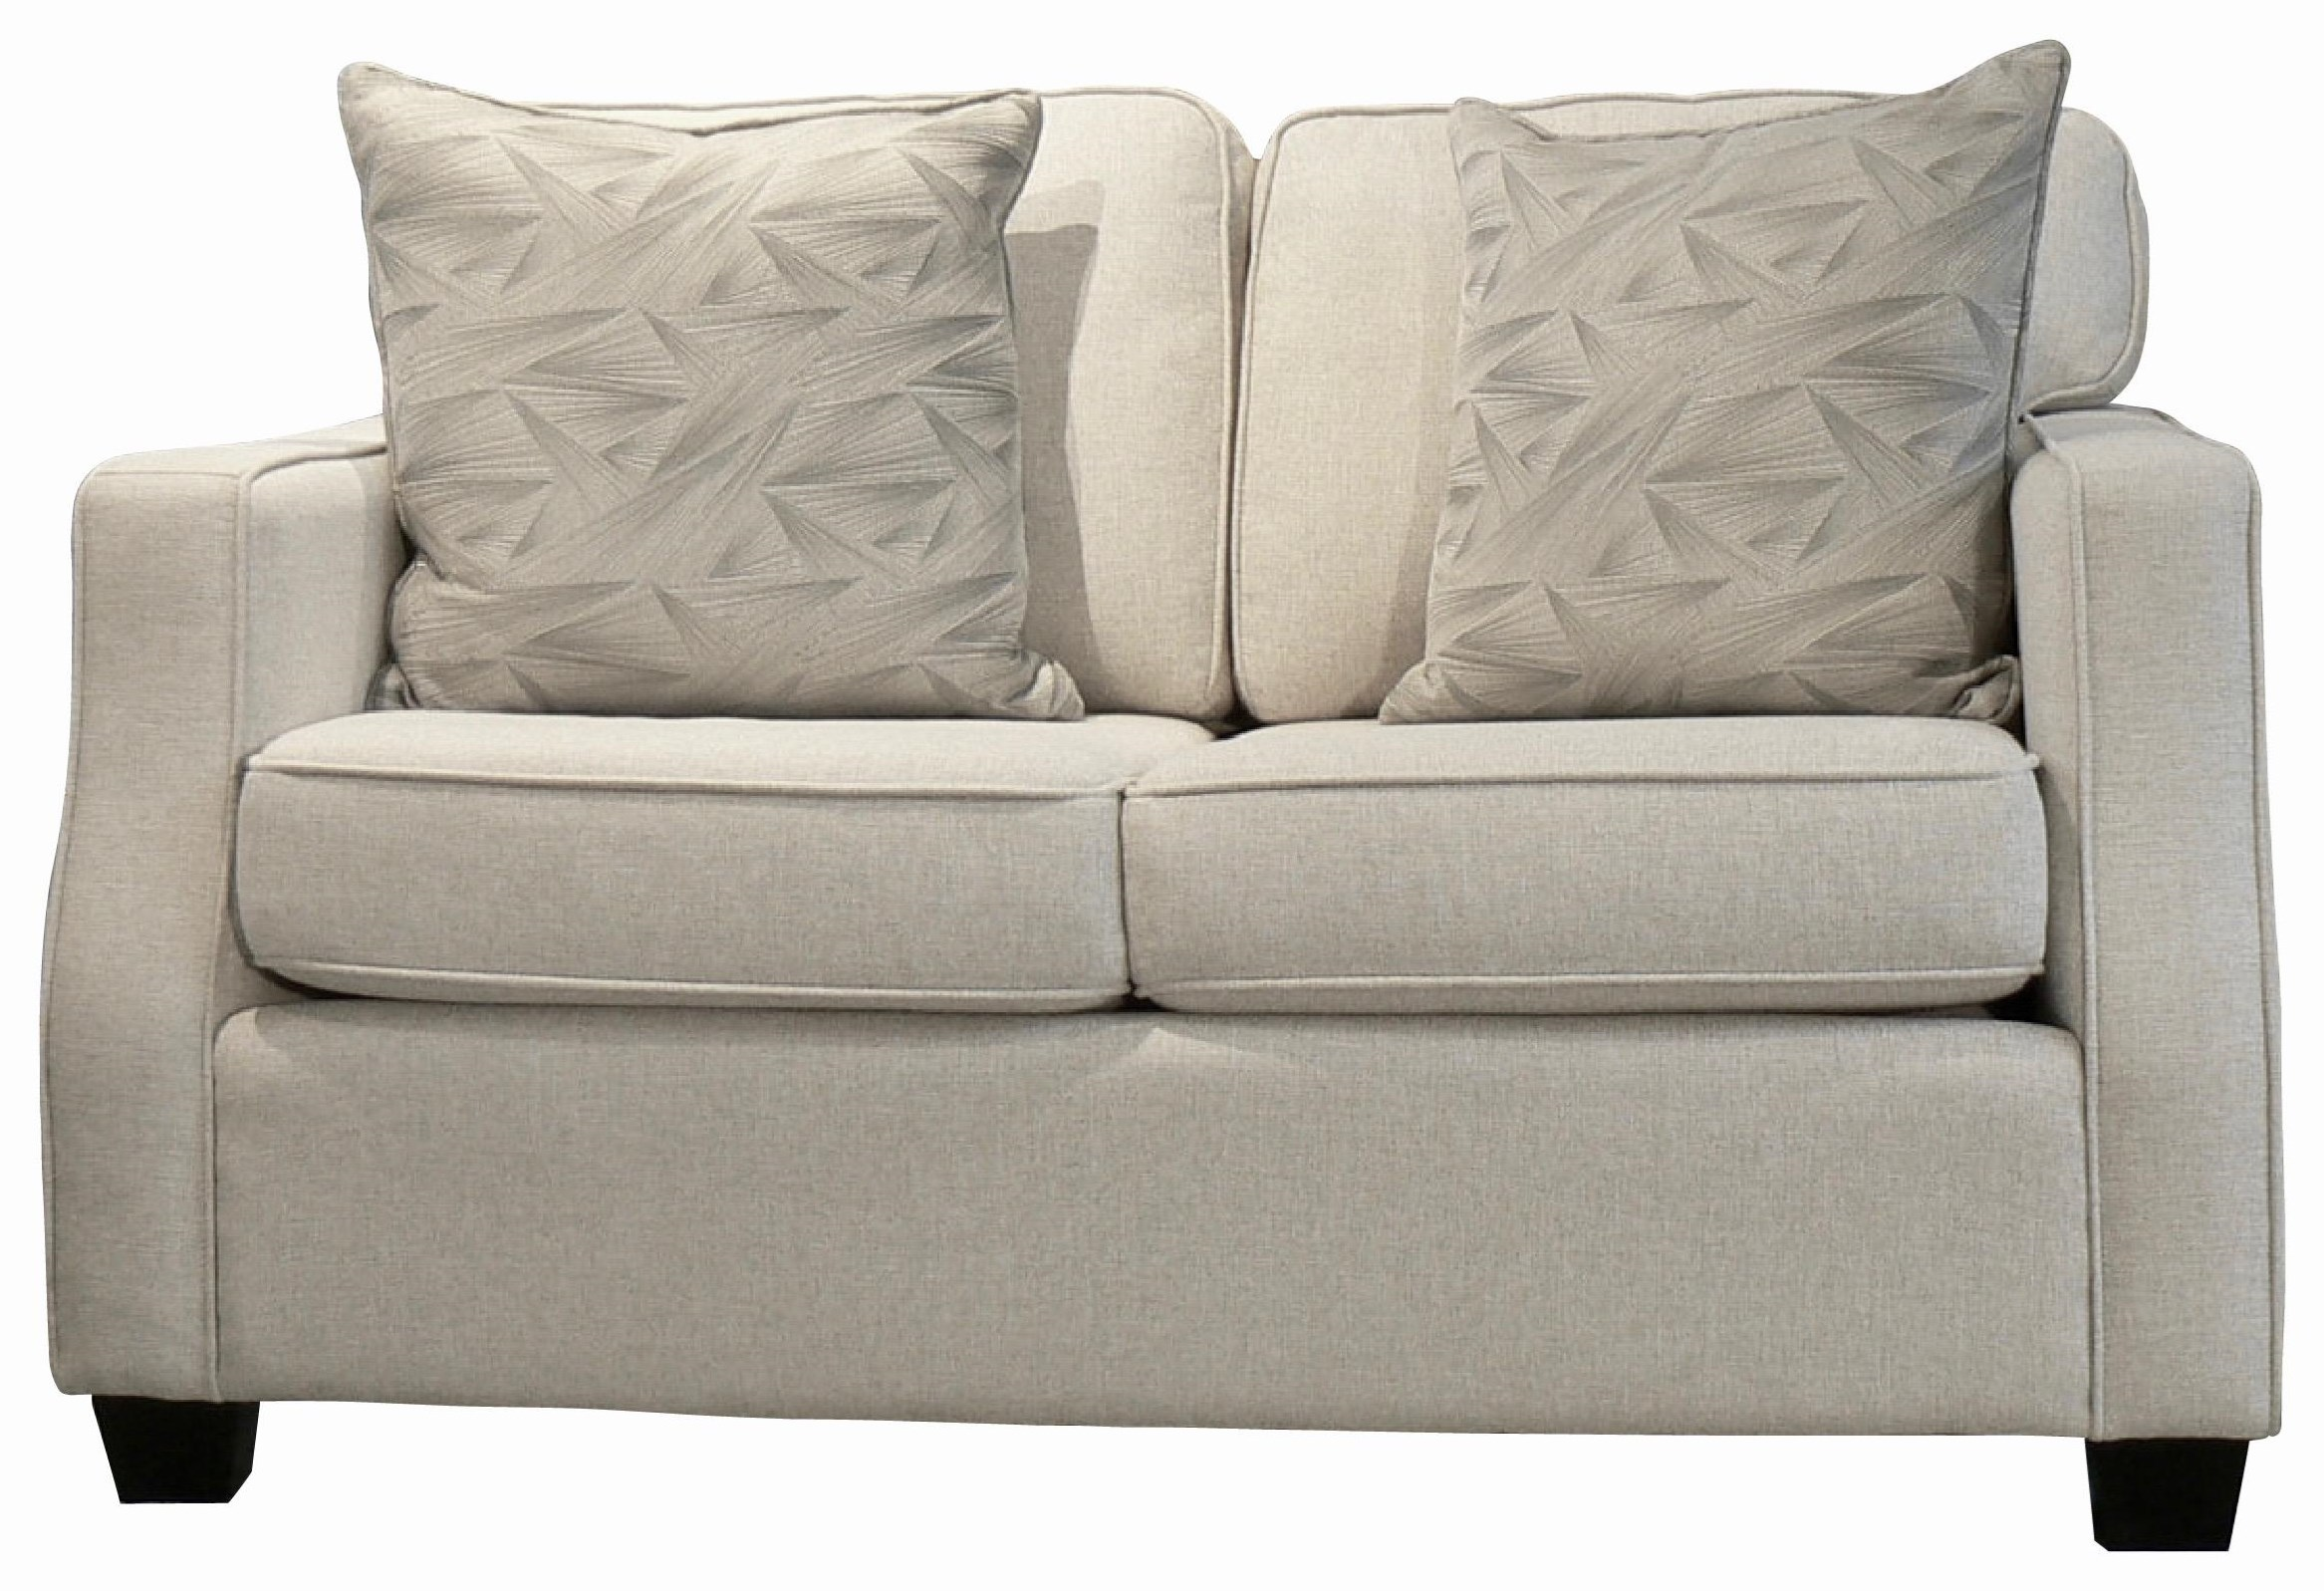 Rio Loveseat by Taelor Designs at Bennett's Furniture and Mattresses